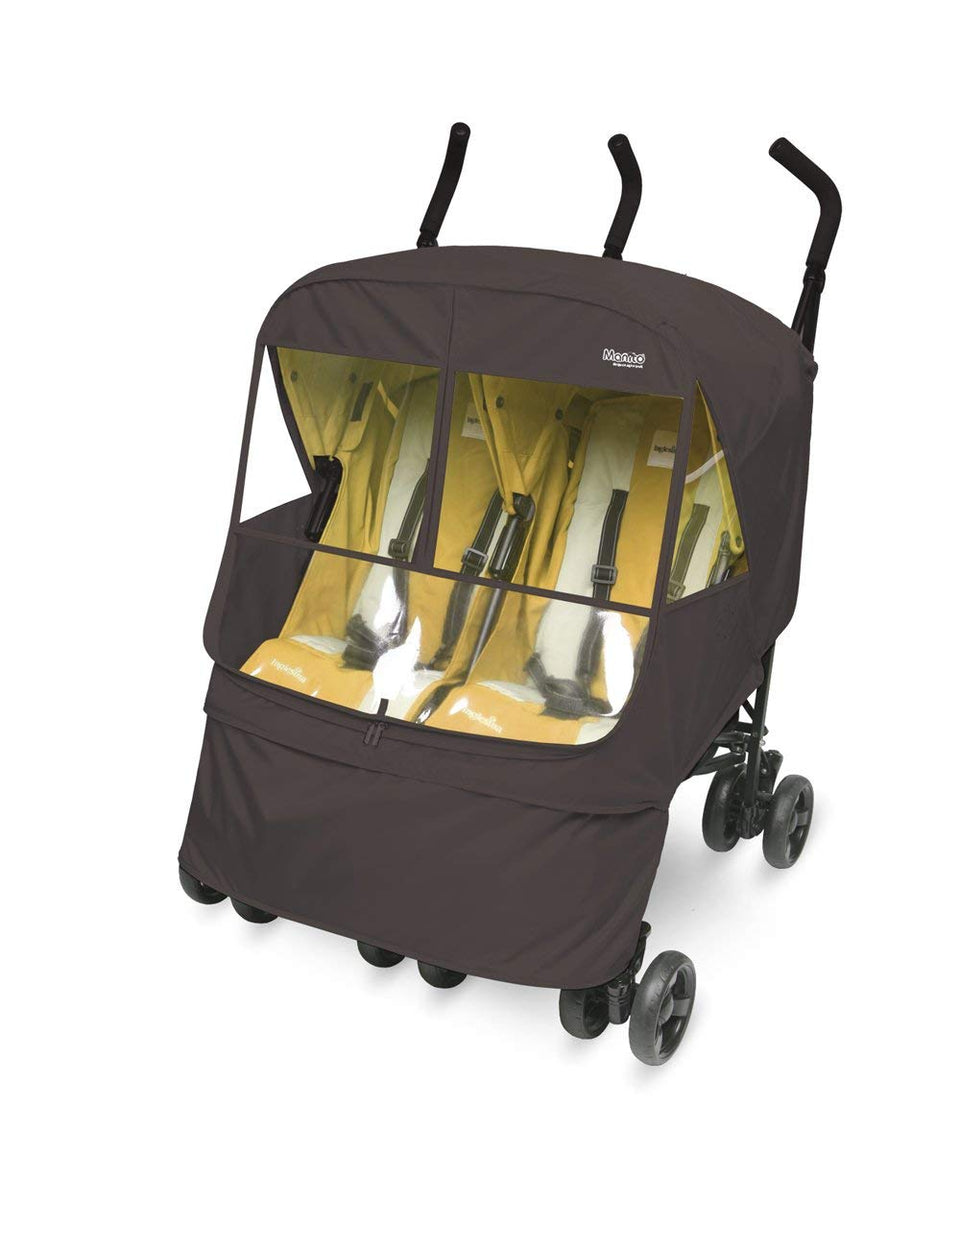 Elegance Alpha Twin Stroller Weather Shield (Chocolate)